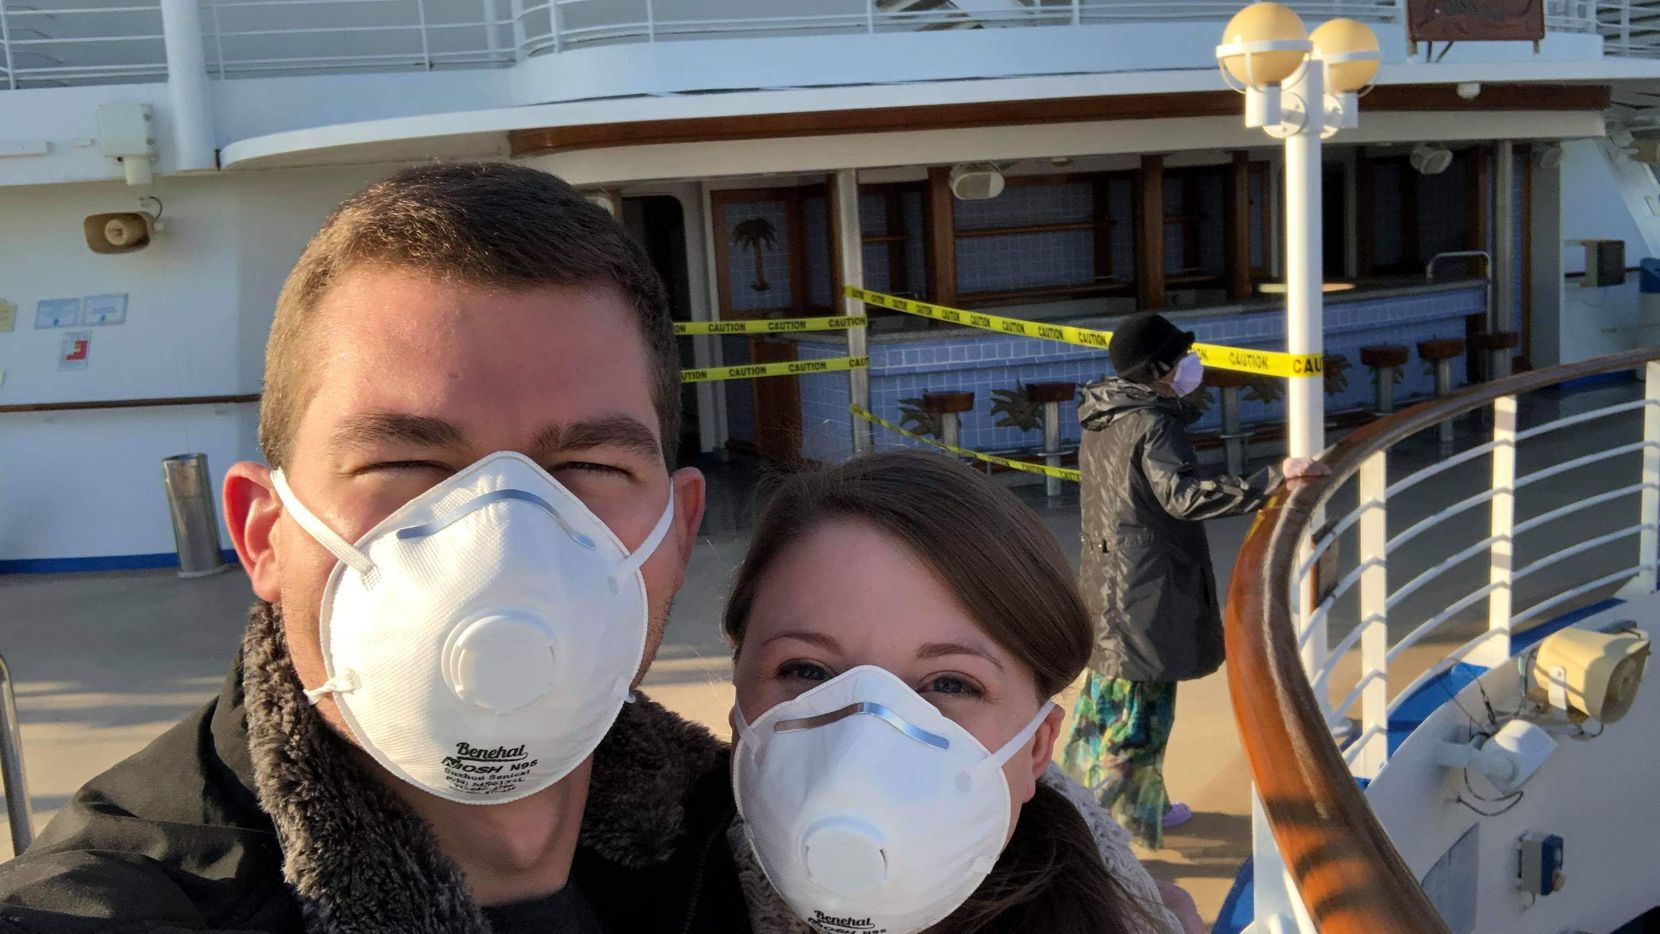 Rachel Torres and her husband, Tyler Torres, were quarantined on their honeymoon on the Diamond Princess cruise ship.